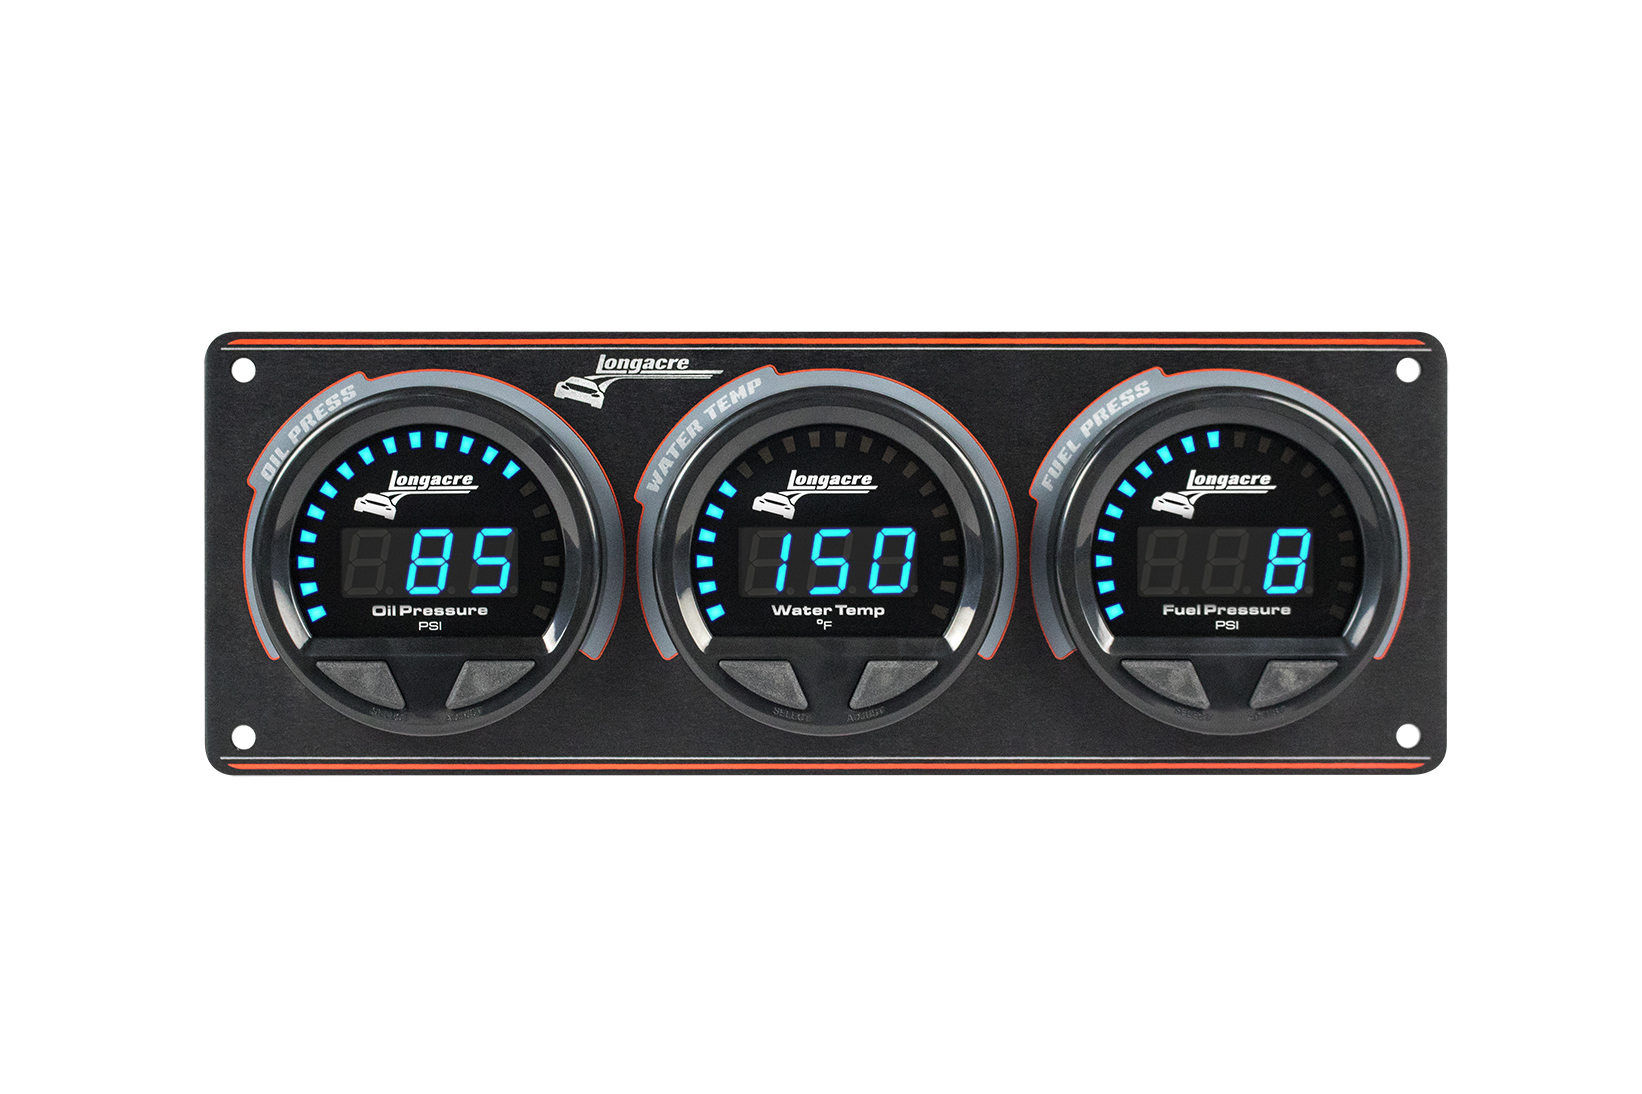 Digital Elite Waterproof Gauge Panel, 3 Gauge Oil Pressure/Water Temperature/Fuel Pressure 15psi